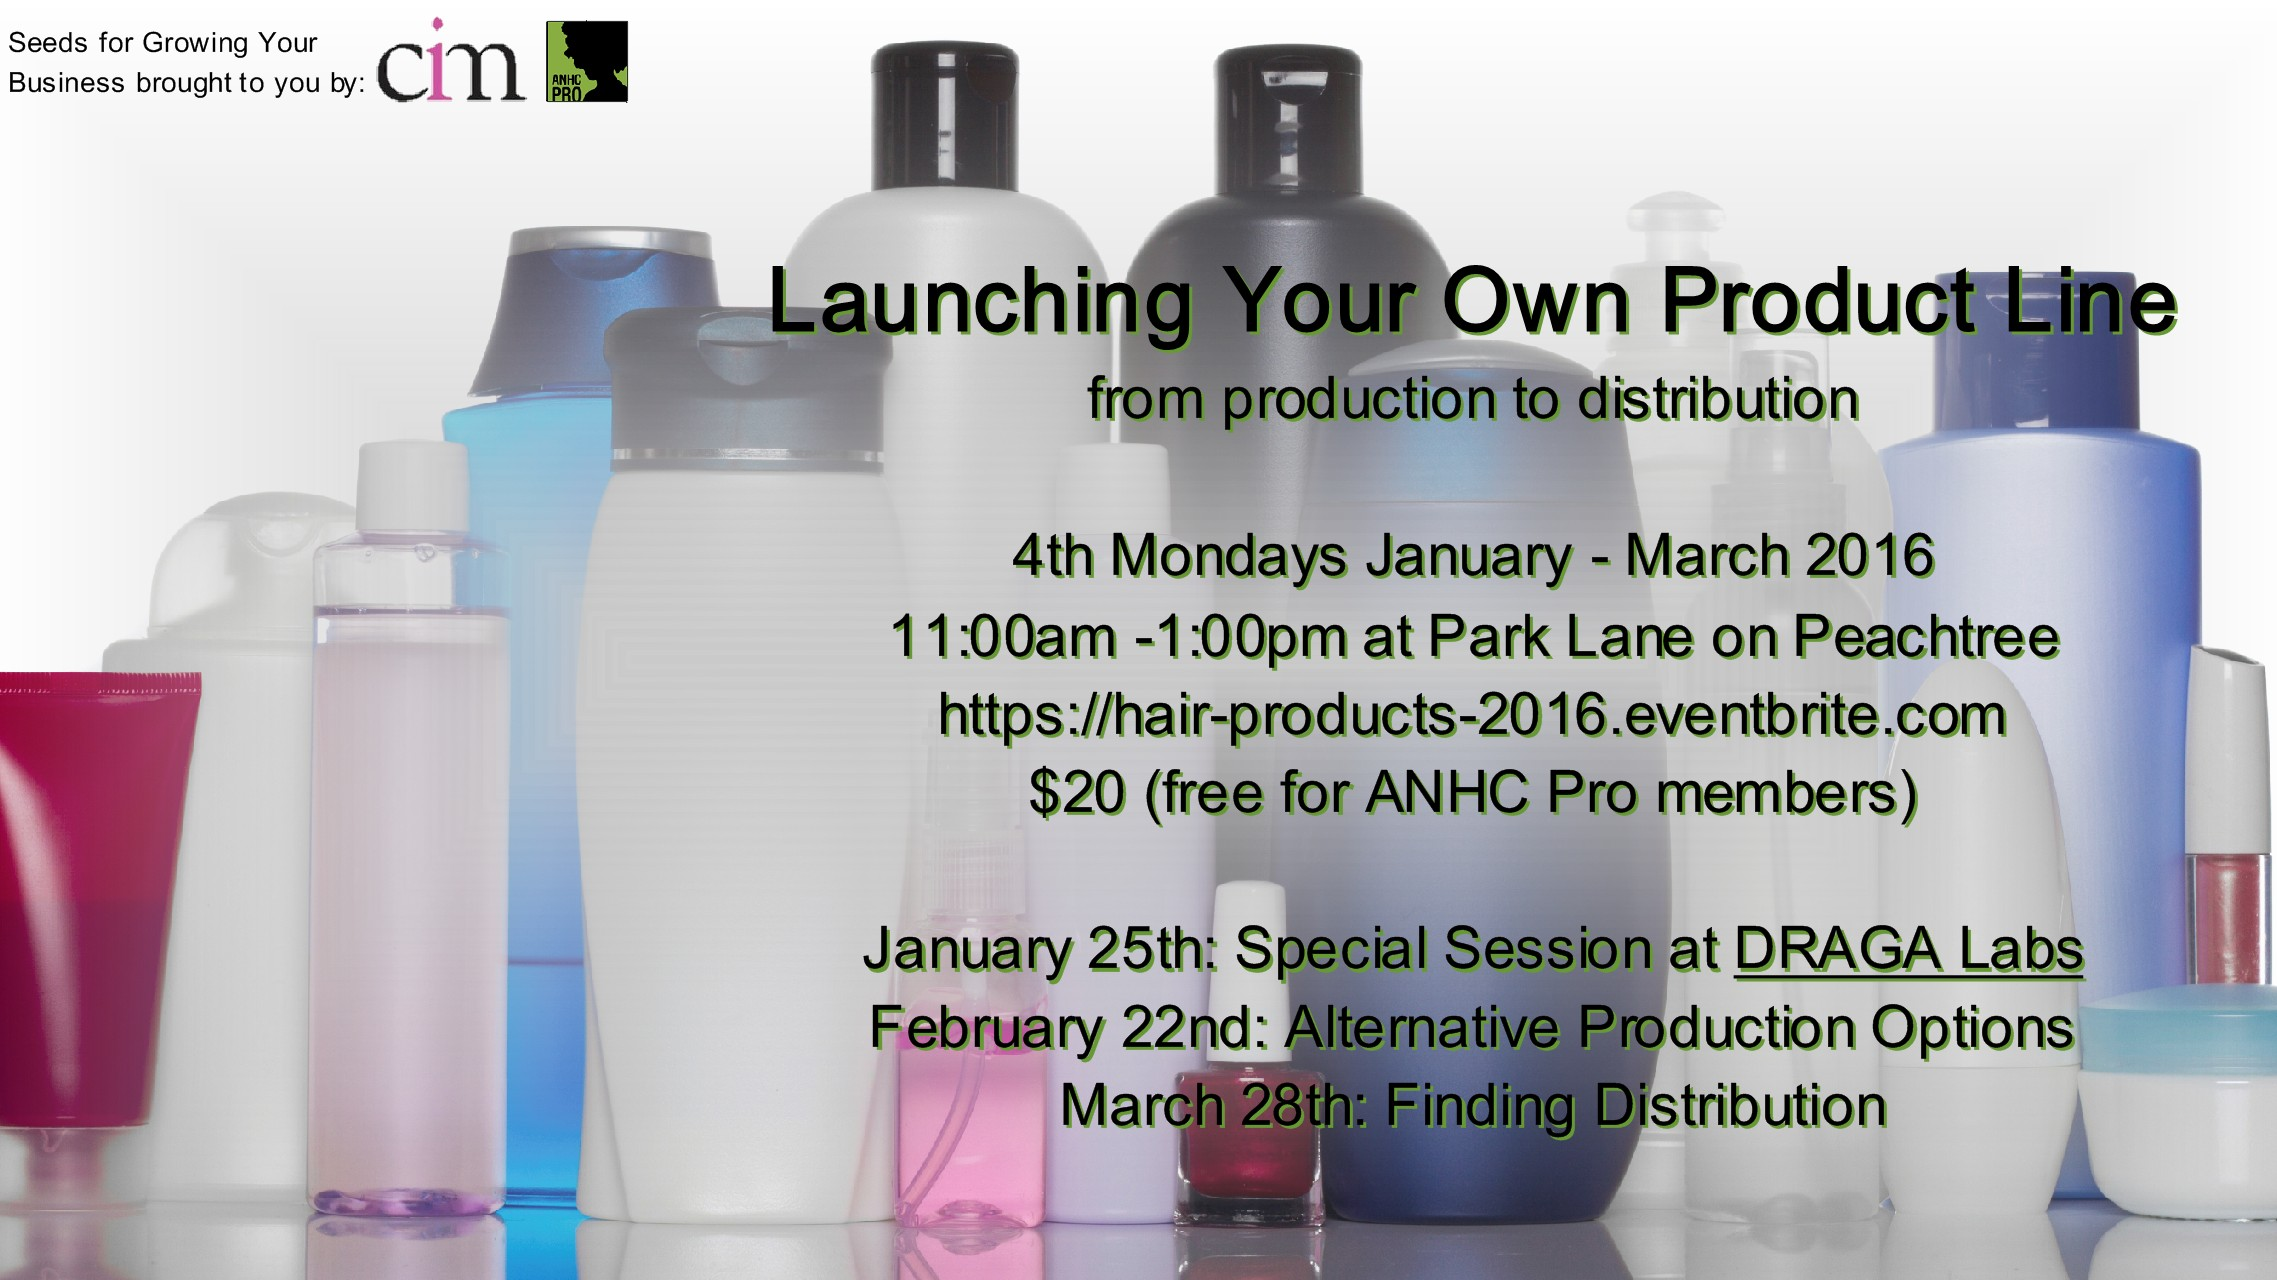 Launching Your Own Product Line Sessions